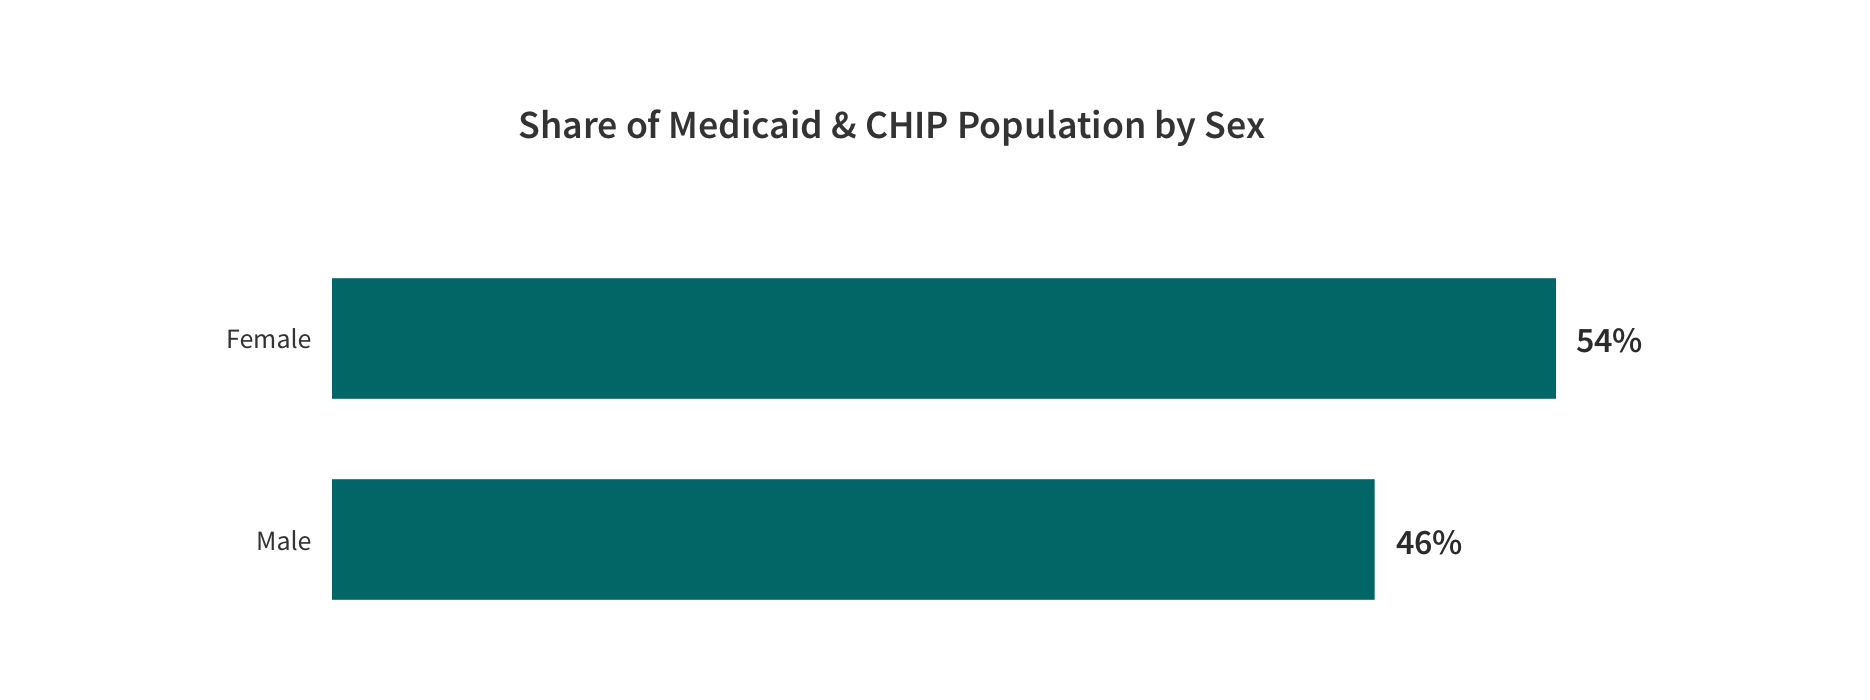 Share of Medicaid and CHIP Population by Sex Bar Graph with the categories and values. Description shown in the following table.